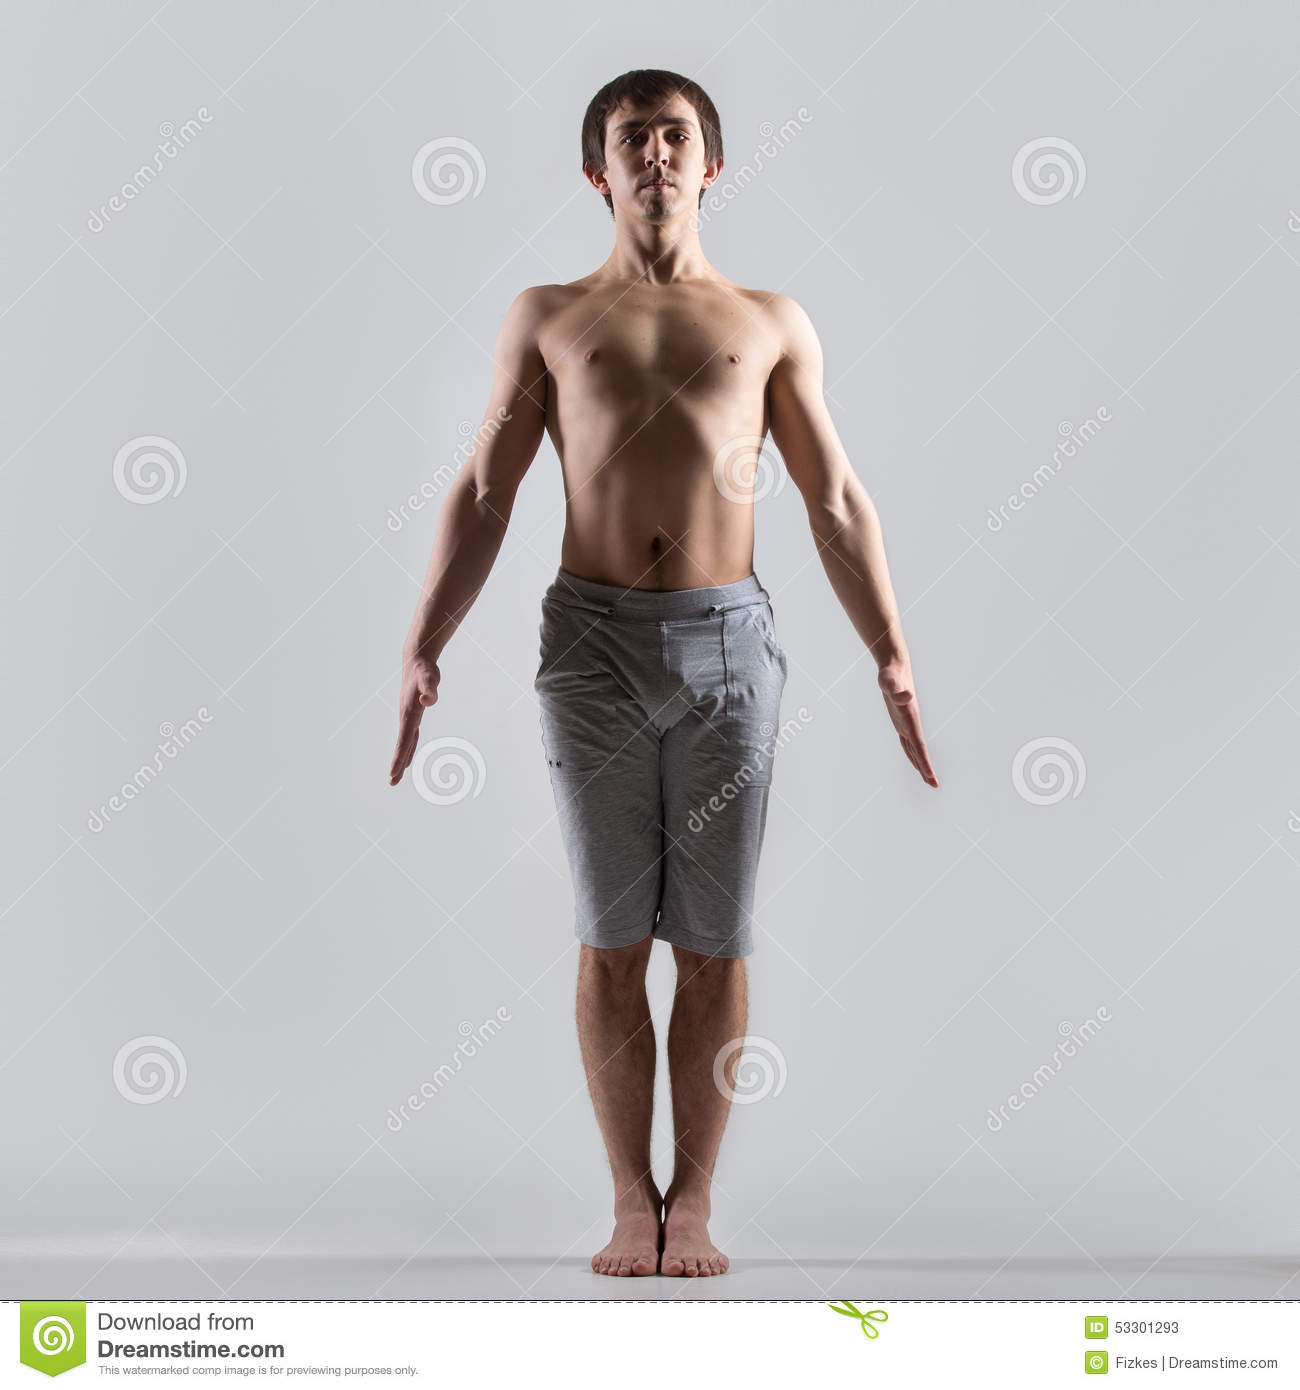 Sporty Muscular Young Man Working Out Yoga Pilates Fitness Training Basic Standing Asana Tadasana Mountain Posture Pose From Surya Namaskar